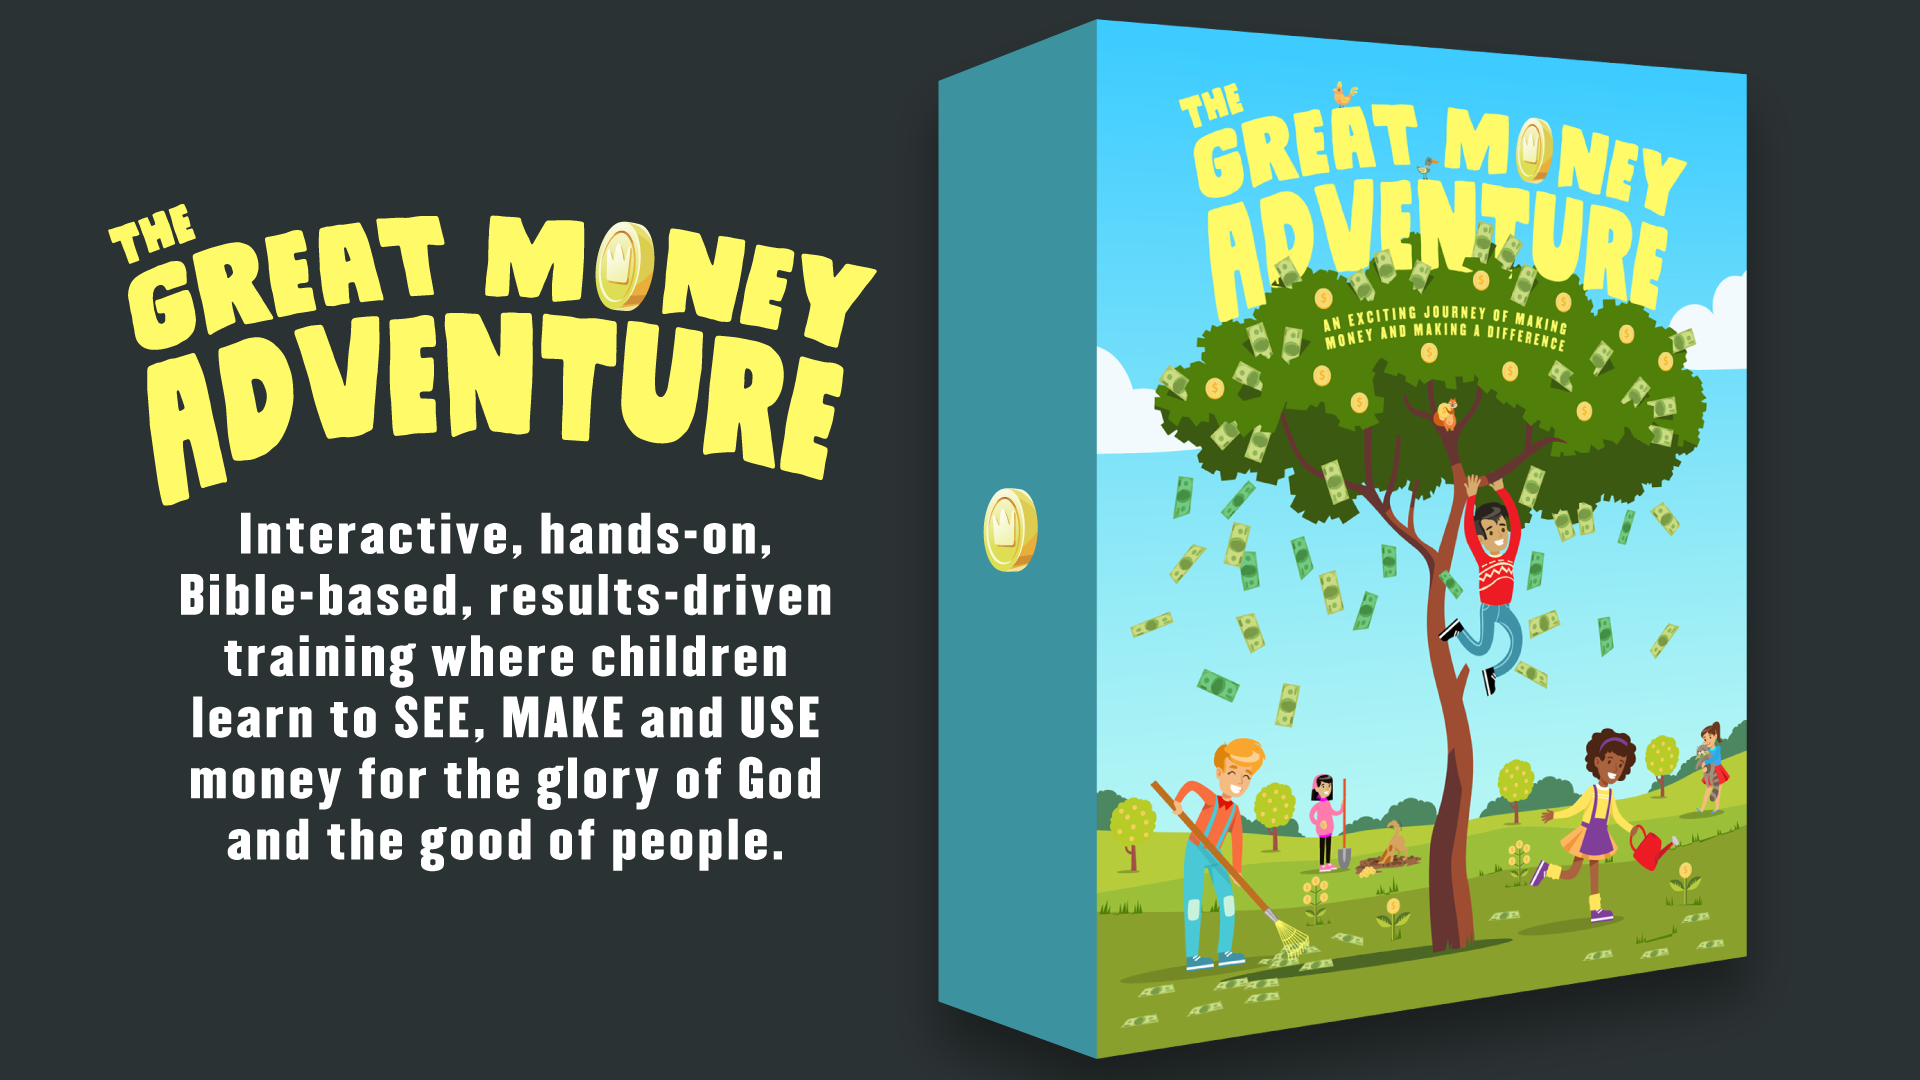 Great-Money-Adventure-Ad.png